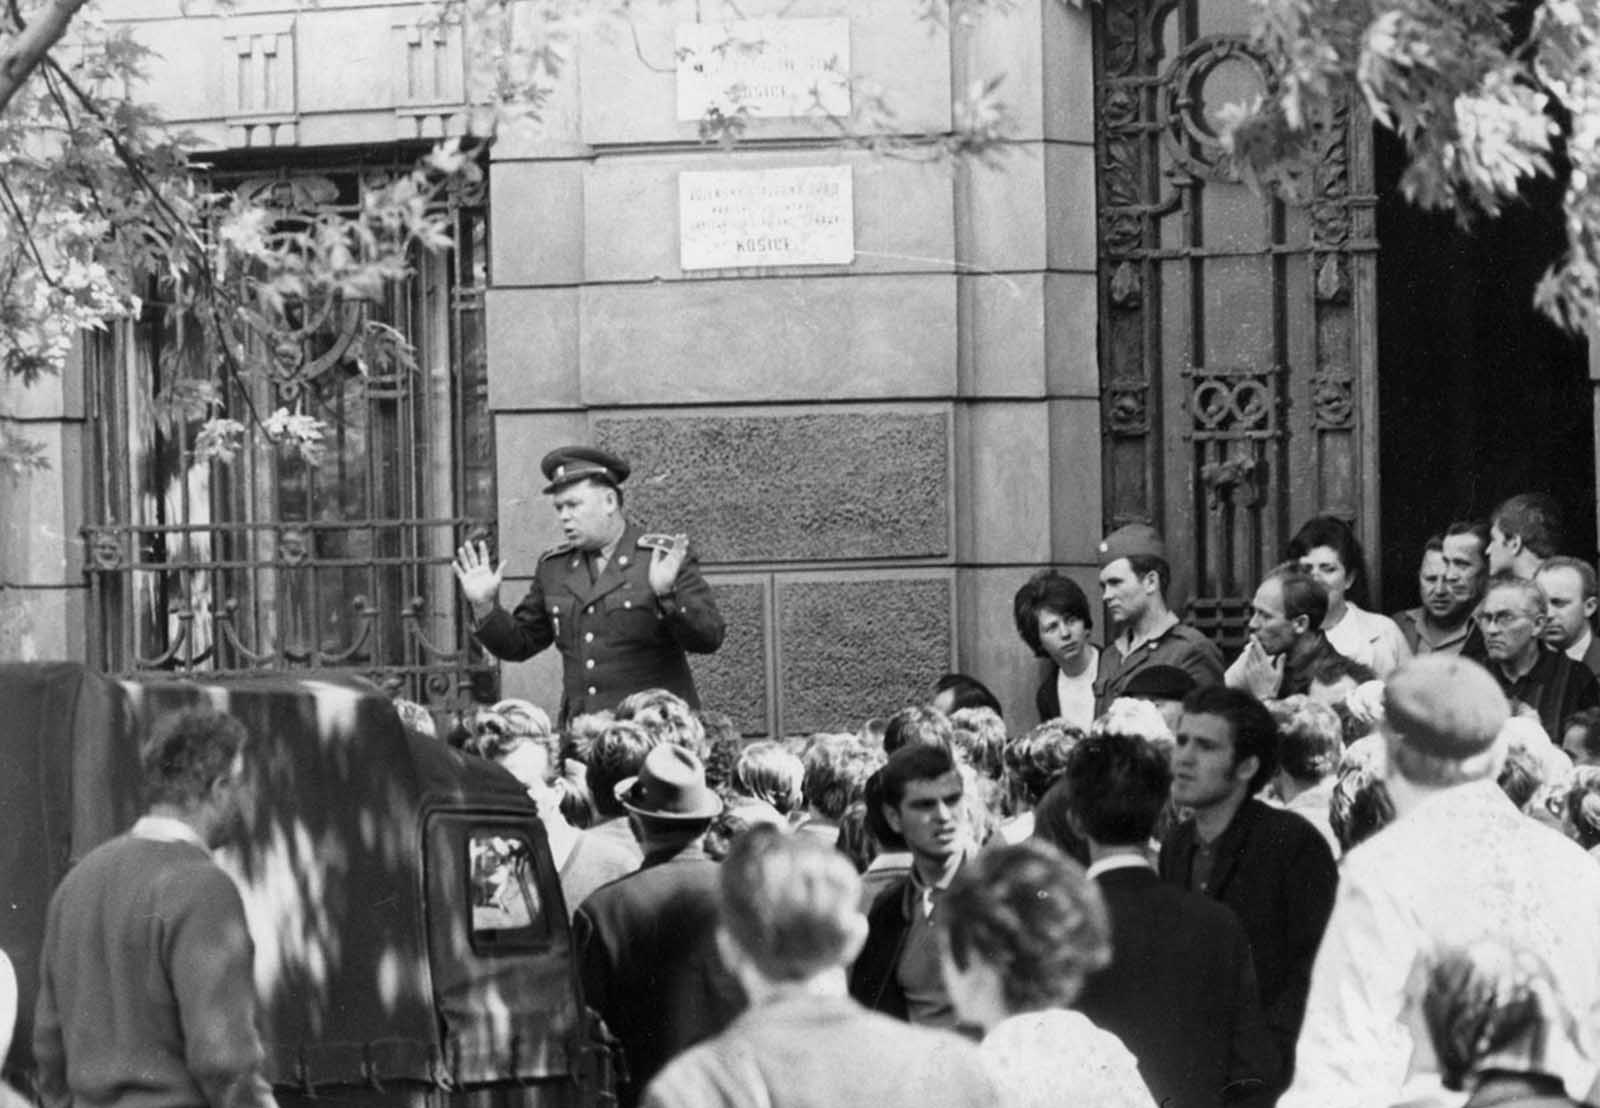 A member of the Czechoslovakian army is jeered by locals in Košice, Czechoslovakia, on August 21, 1968, as he addresses them outside the city hall shortly after troops had occupied the town as part of the Soviet invasion.